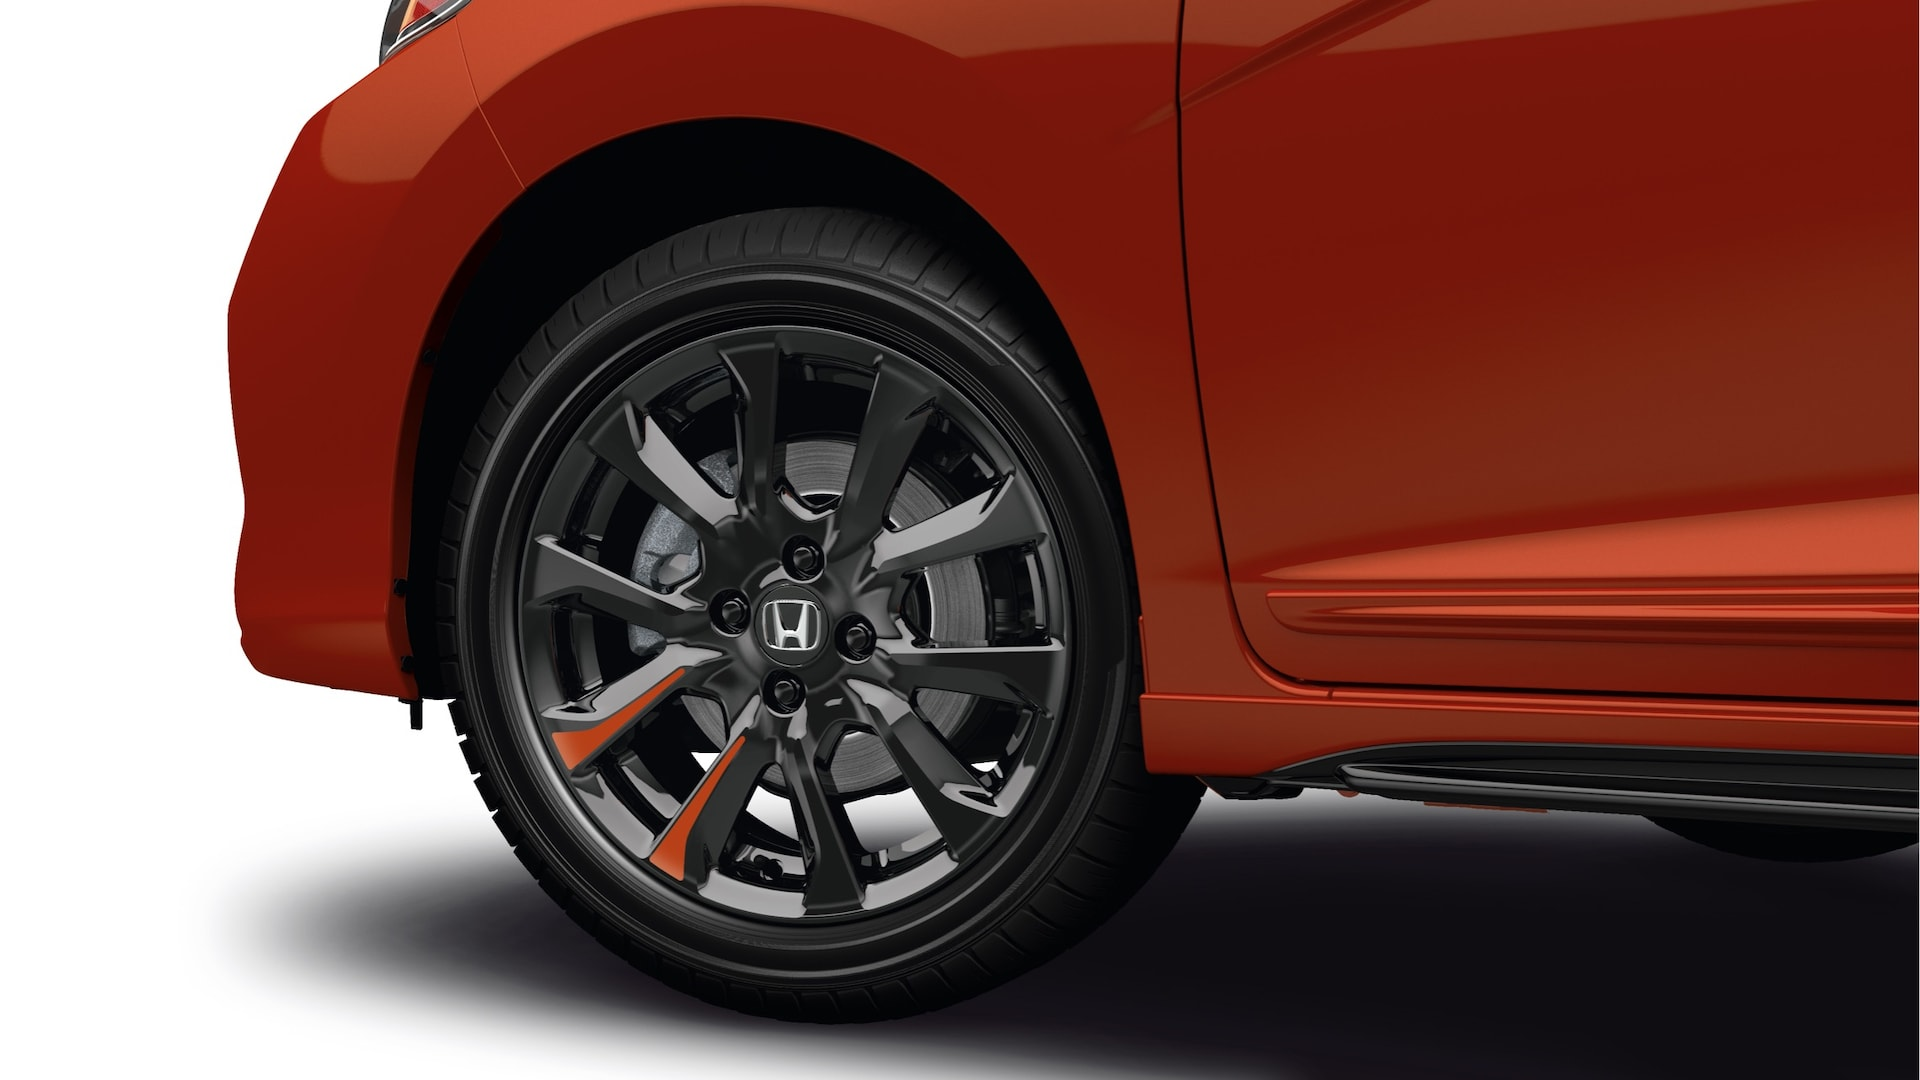 Driver-side view of 16-inch black alloy wheel detail on the 2020 Honda Fit in Milano Red.